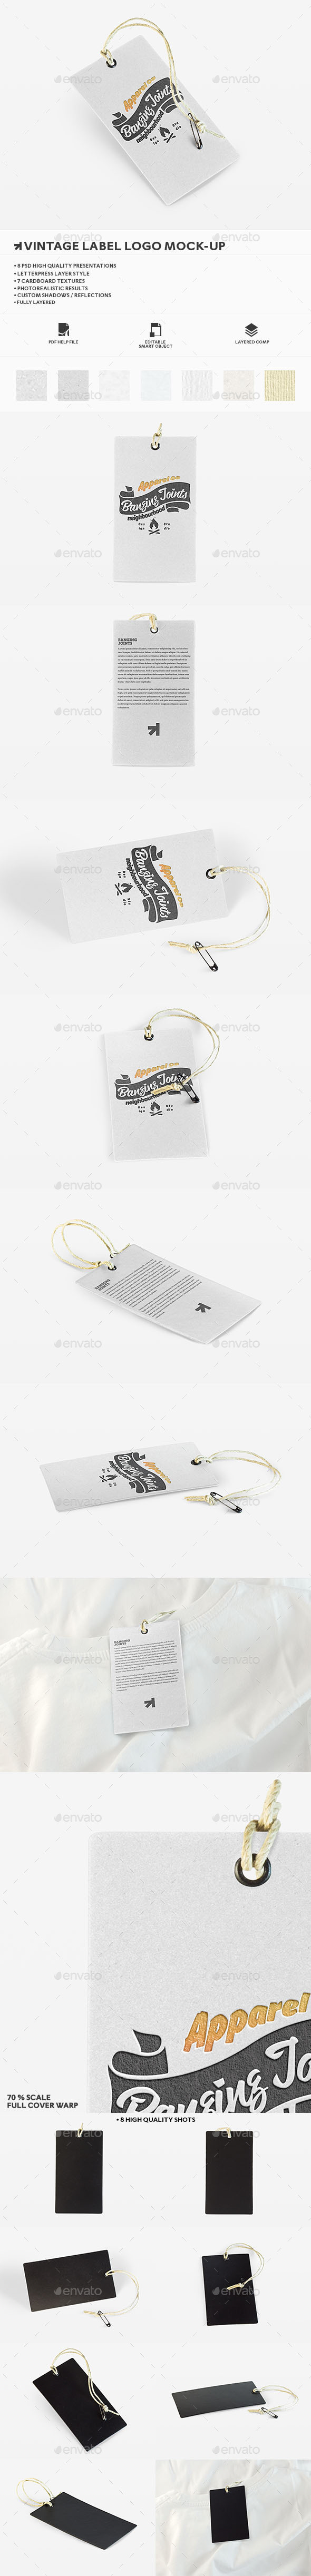 GraphicRiver Letterpress Label Logo Mockup 11750387